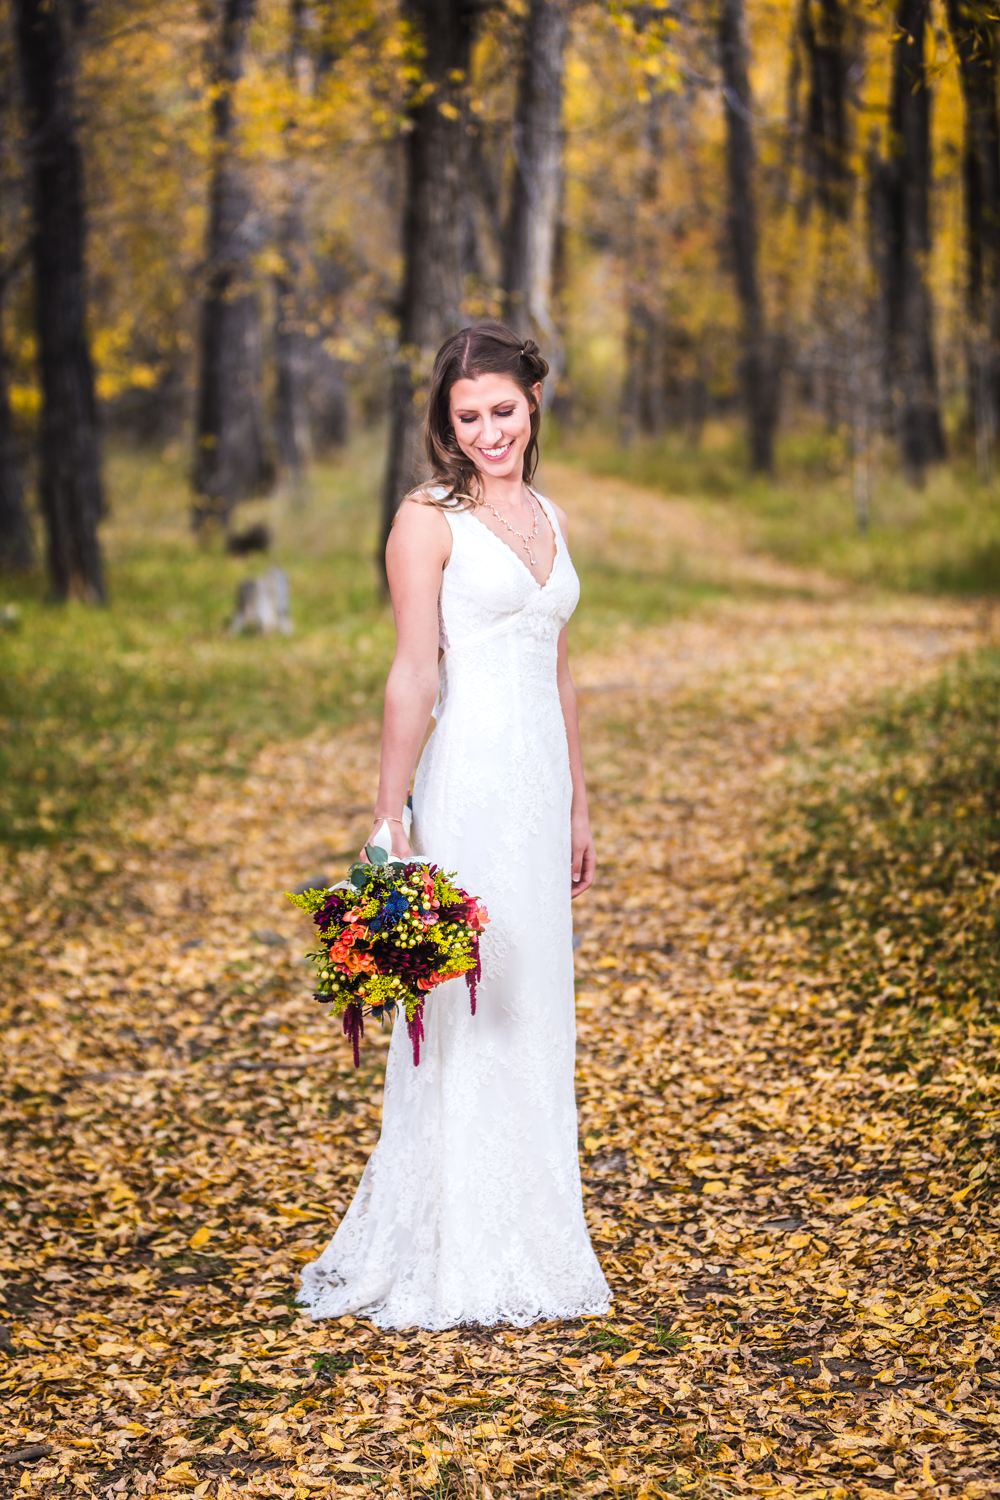 Pagosa Springs Wedding | Zach and Liz | Colorado Wedding Photographer